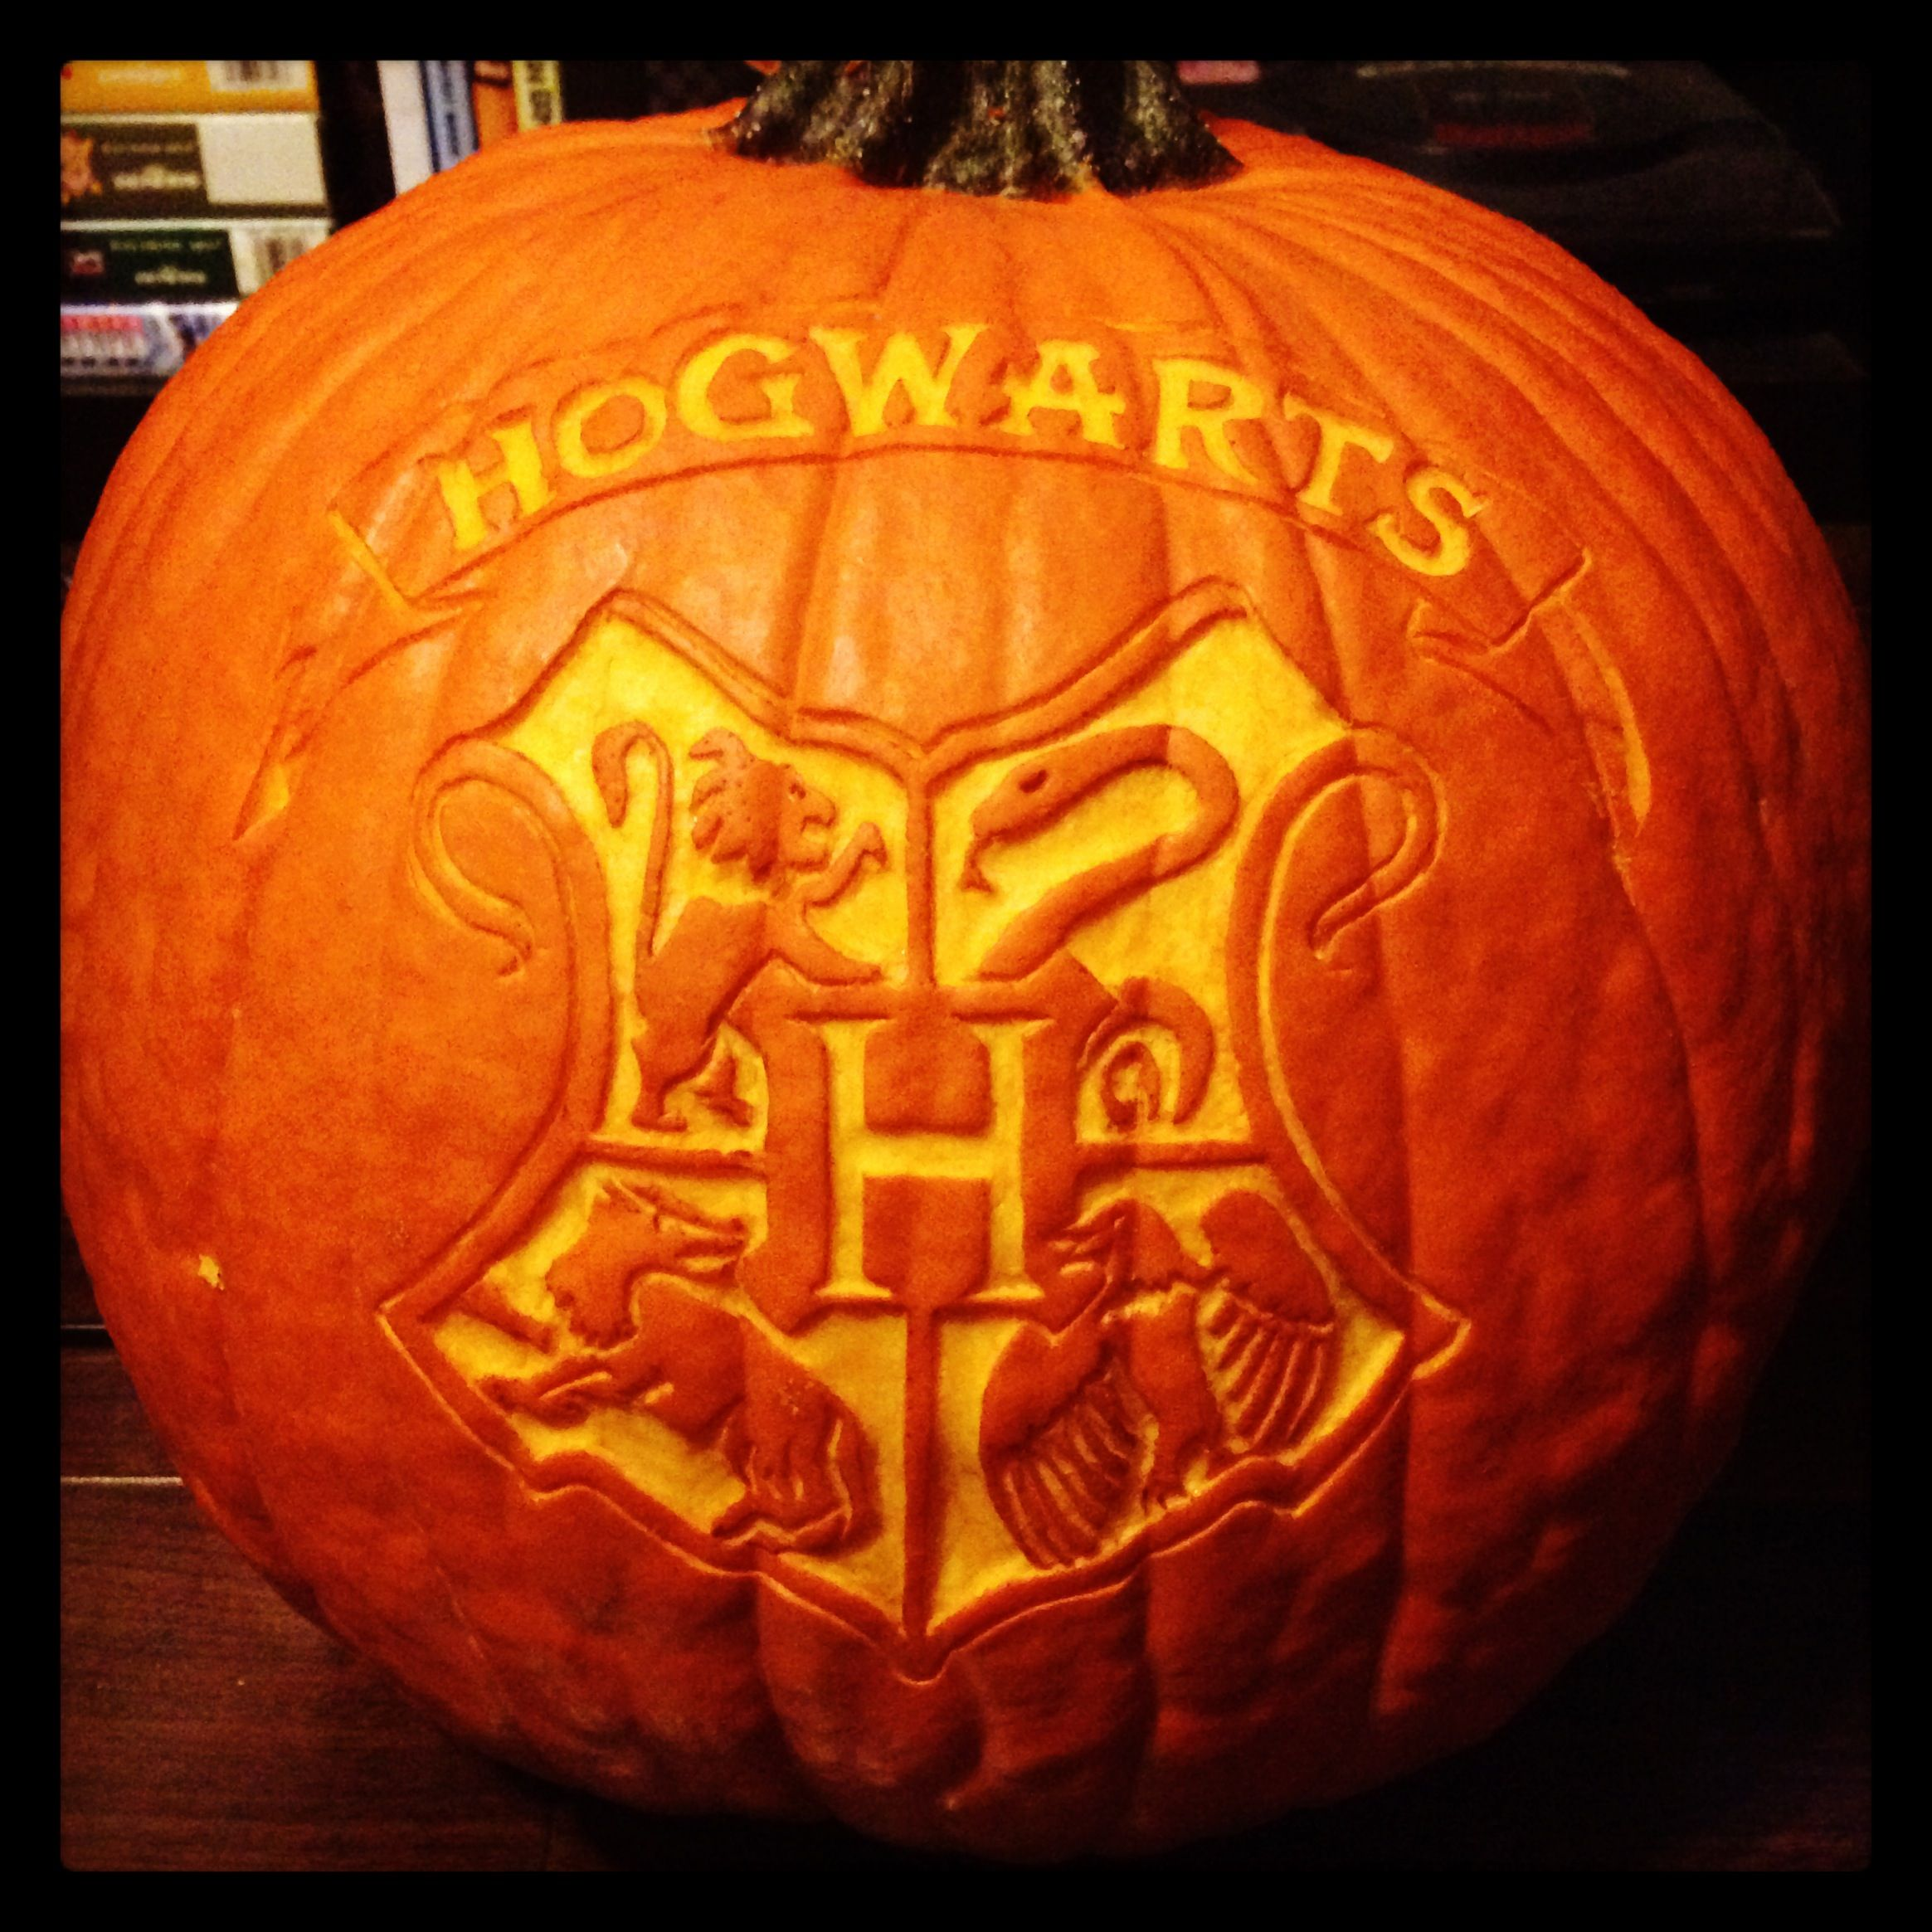 I Carved A Harry Potter Pumpkin Pumpkin Carving Hogwarts School Of Witchcraft And Wizardr Pumpkin Carving Harry Potter Pumpkin Harry Potter Pumpkin Carving